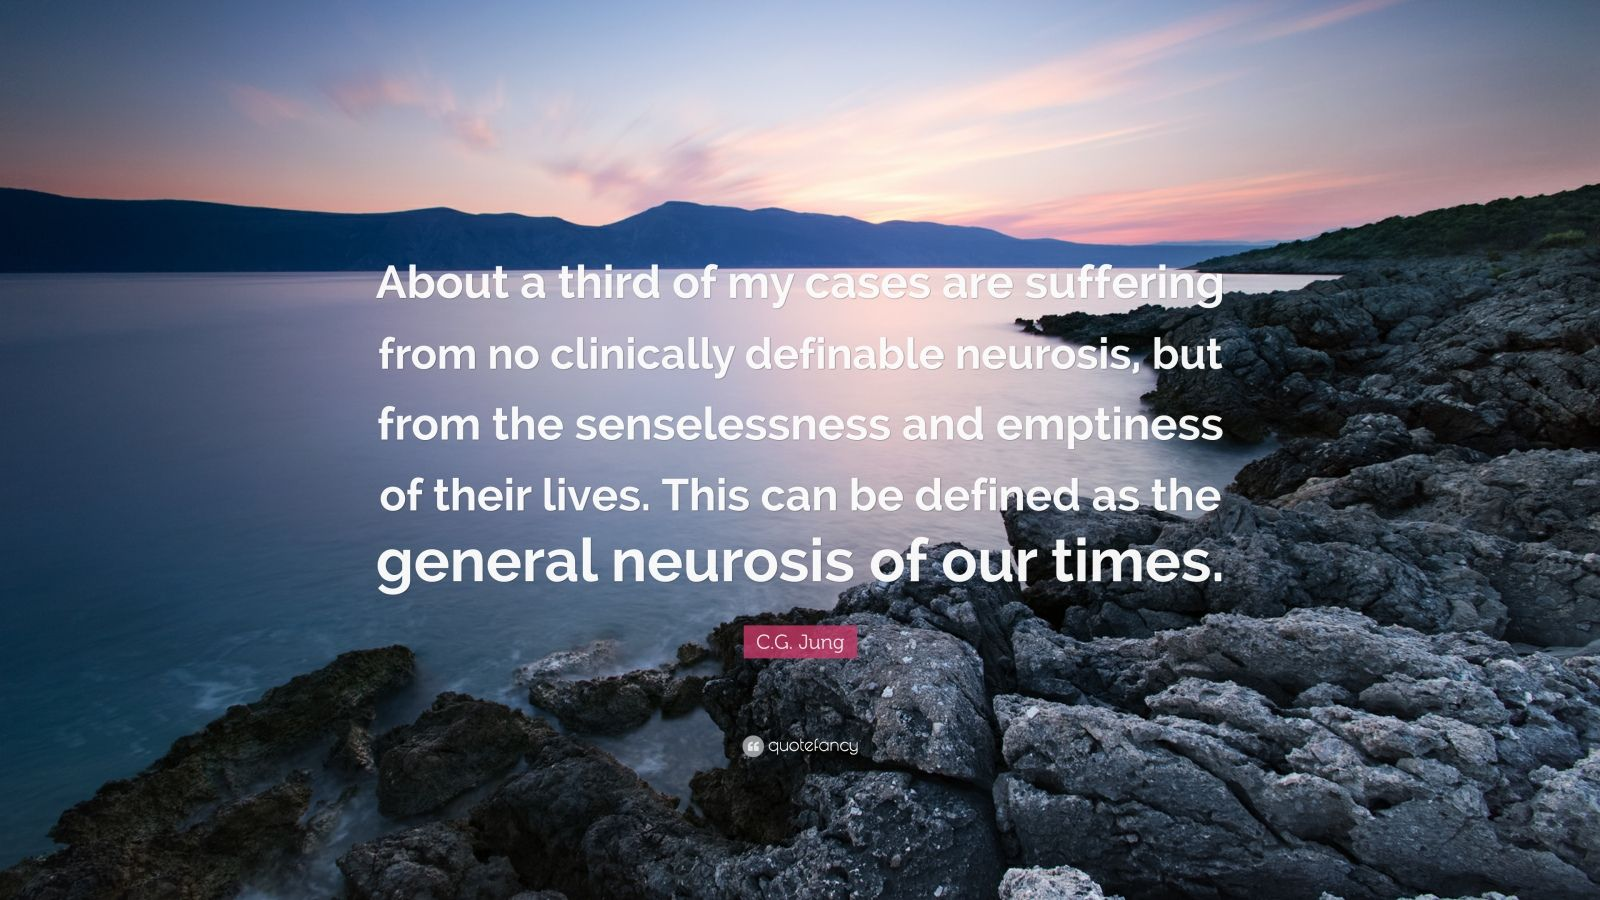 """C.G. Jung Quote: """"About a third of my cases are suffering from no clinically definable neurosis, but from the senselessness and emptiness of their lives. This can be defined as the general neurosis of our times."""""""